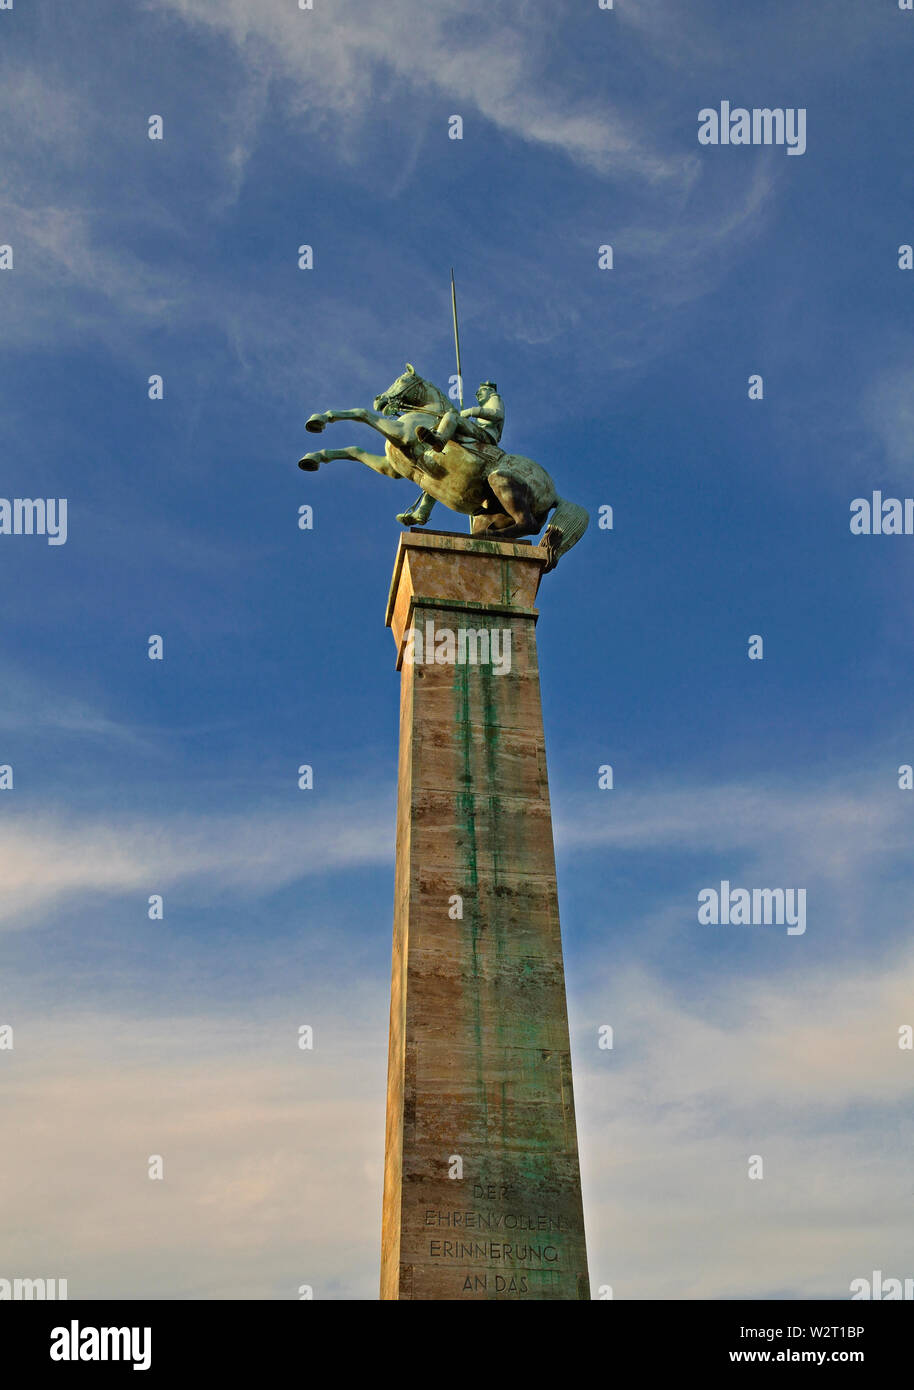 dusseldorf, nrw / germany - december 29, 2012: the lancer monument ( ulanendenkmal ) of 1929 at the embankment of river rhine at joseph-beuys-ufer - Stock Image